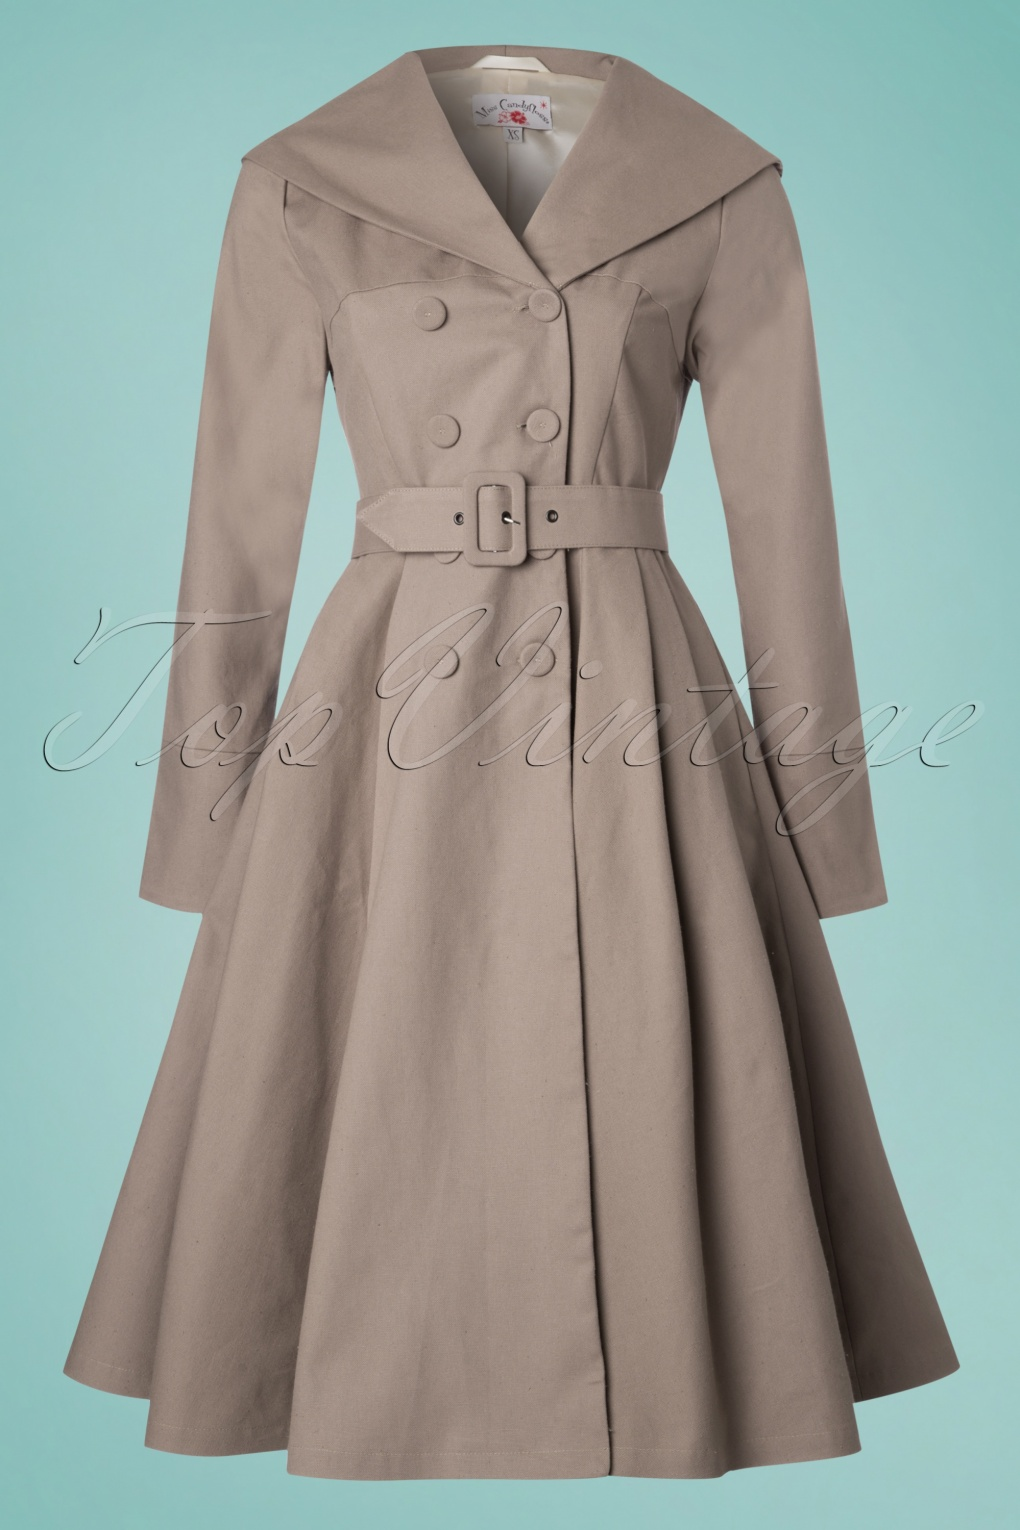 Vintage Coats & Jackets | Retro Coats and Jackets 50s Antonella Swing Trench Coat in Sand £138.15 AT vintagedancer.com